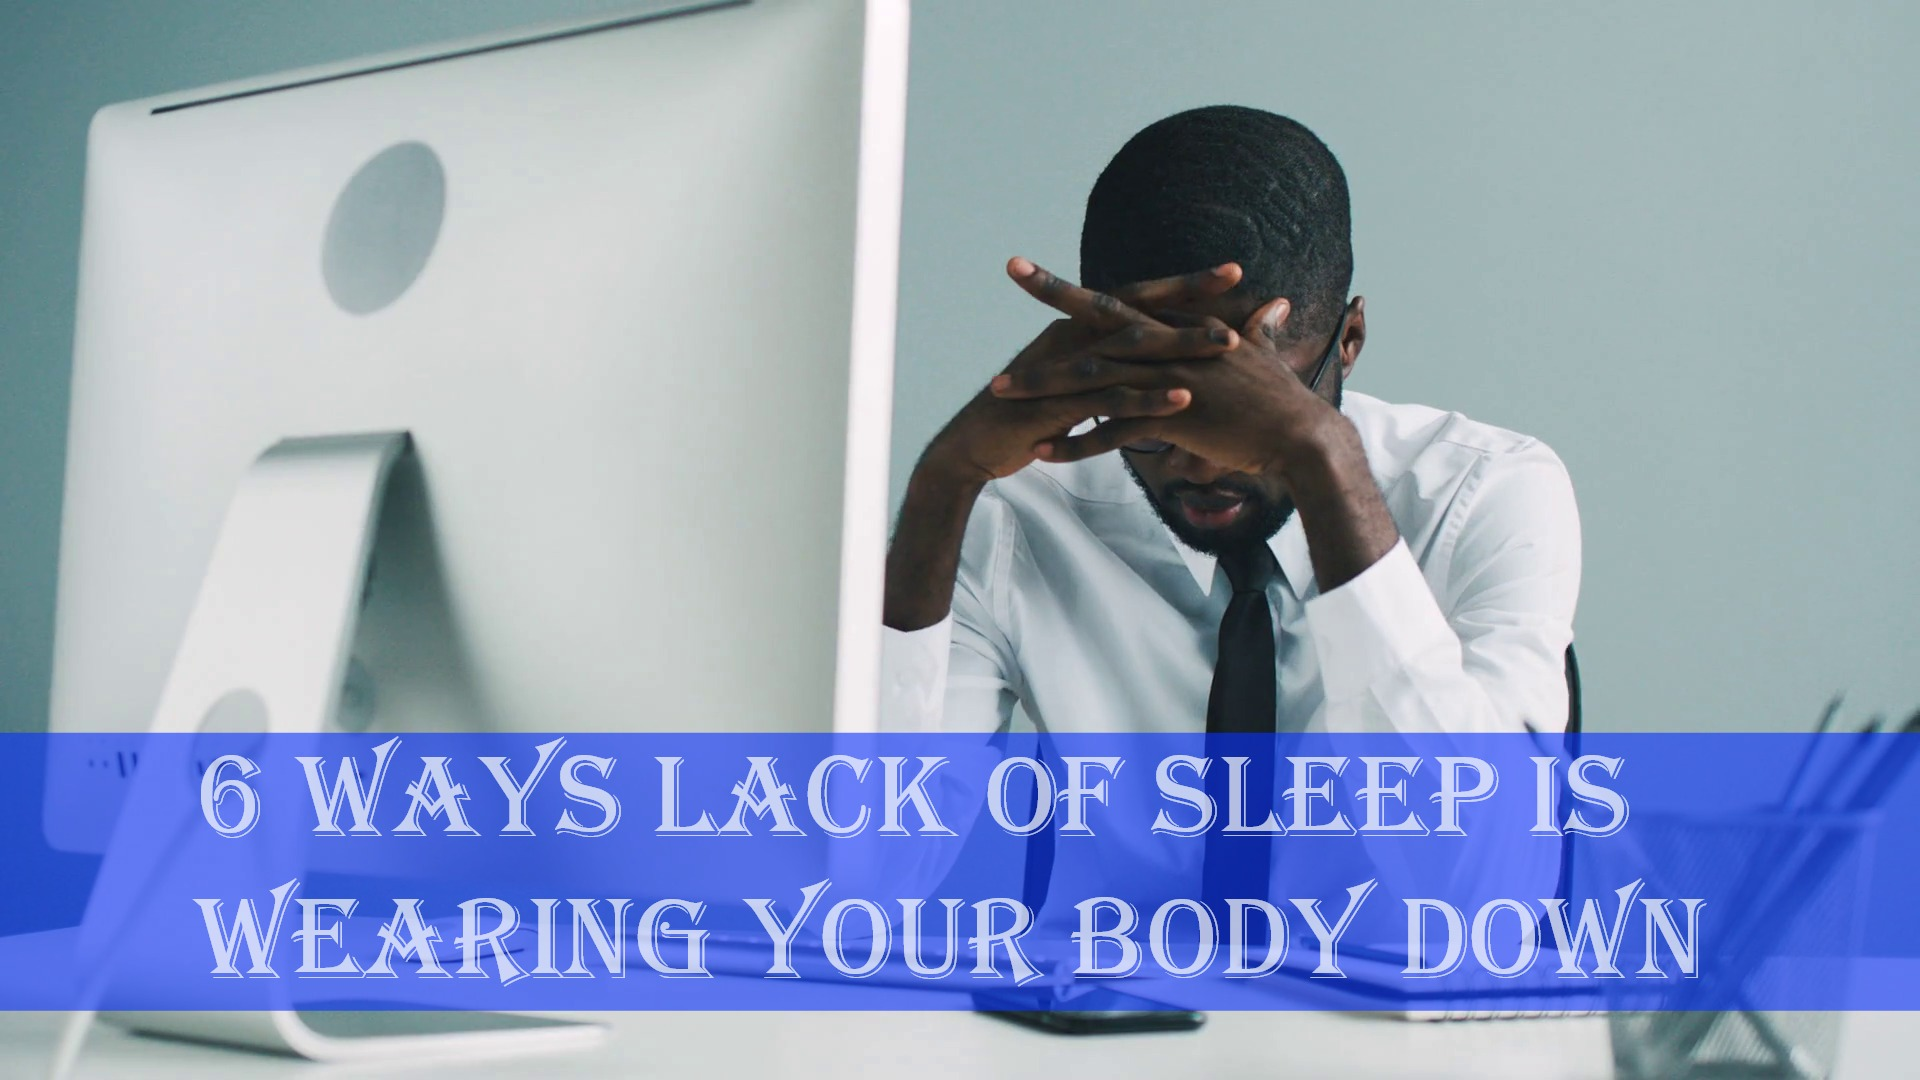 6 Ways Lack of Sleep Is Wearing Your Body Down